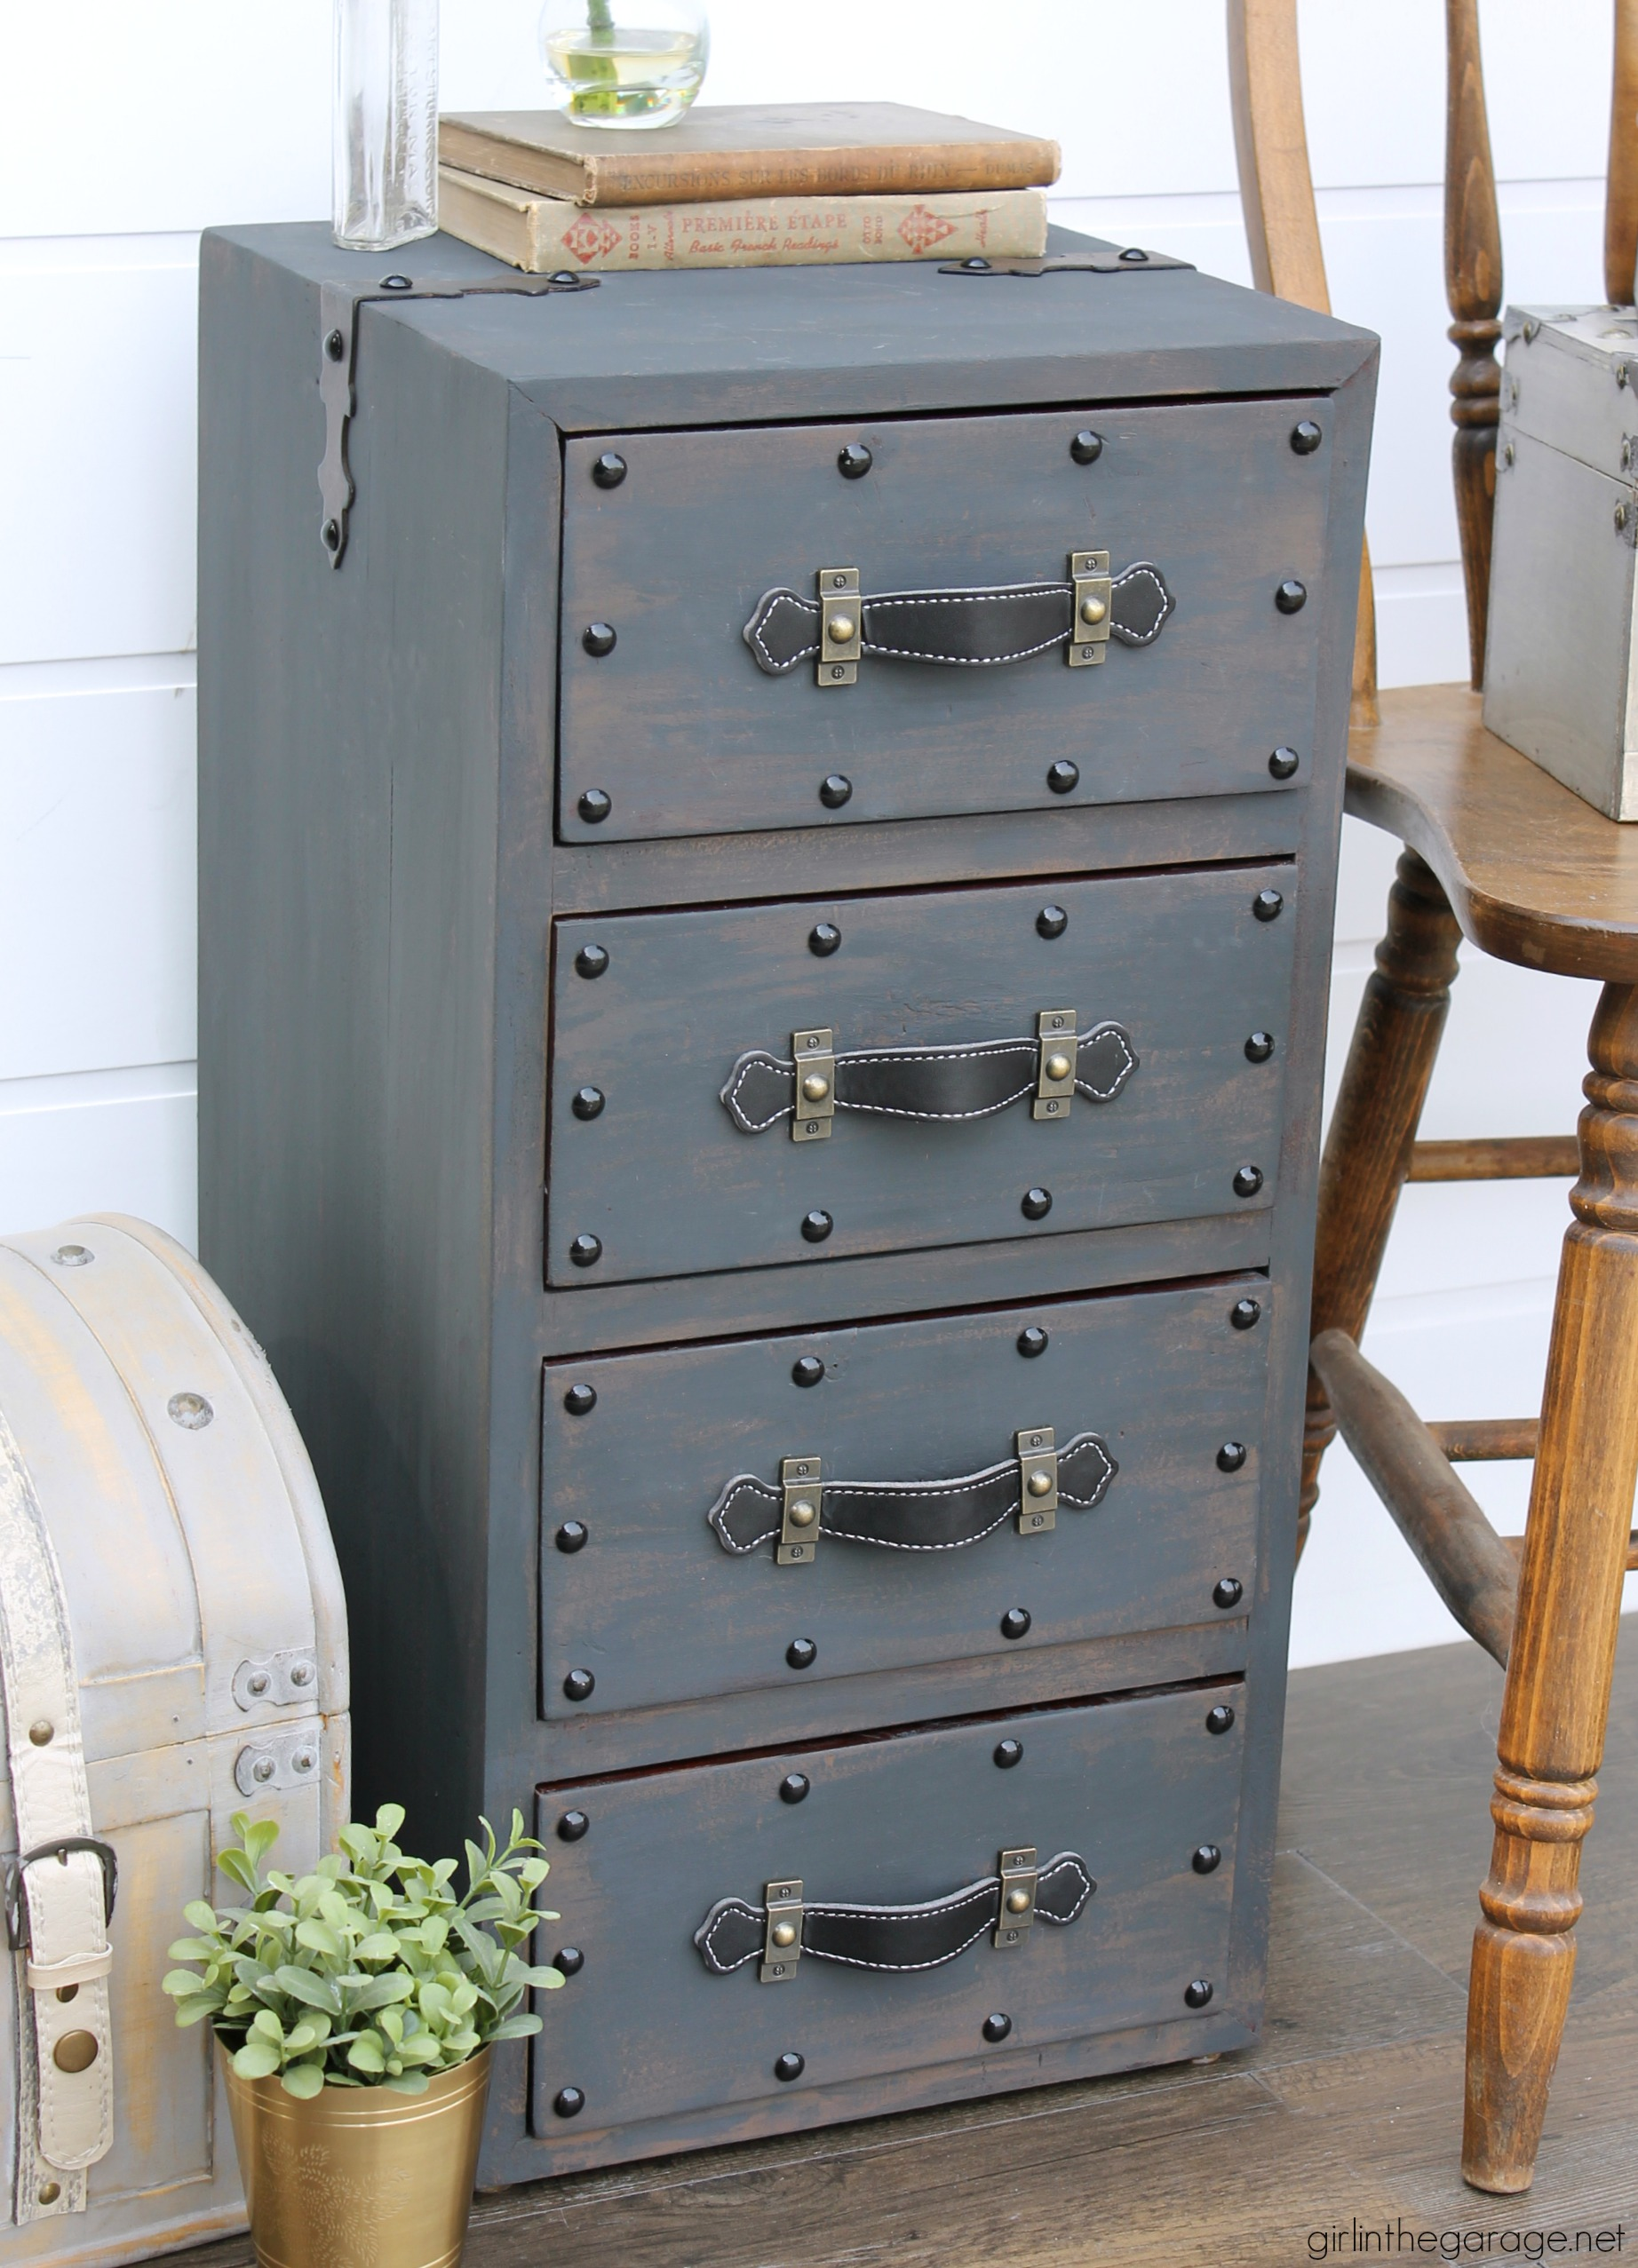 Vintage Steamer Trunk Painted Nightstand - DIY Painted Furniture Ideas by Girl in the Garage